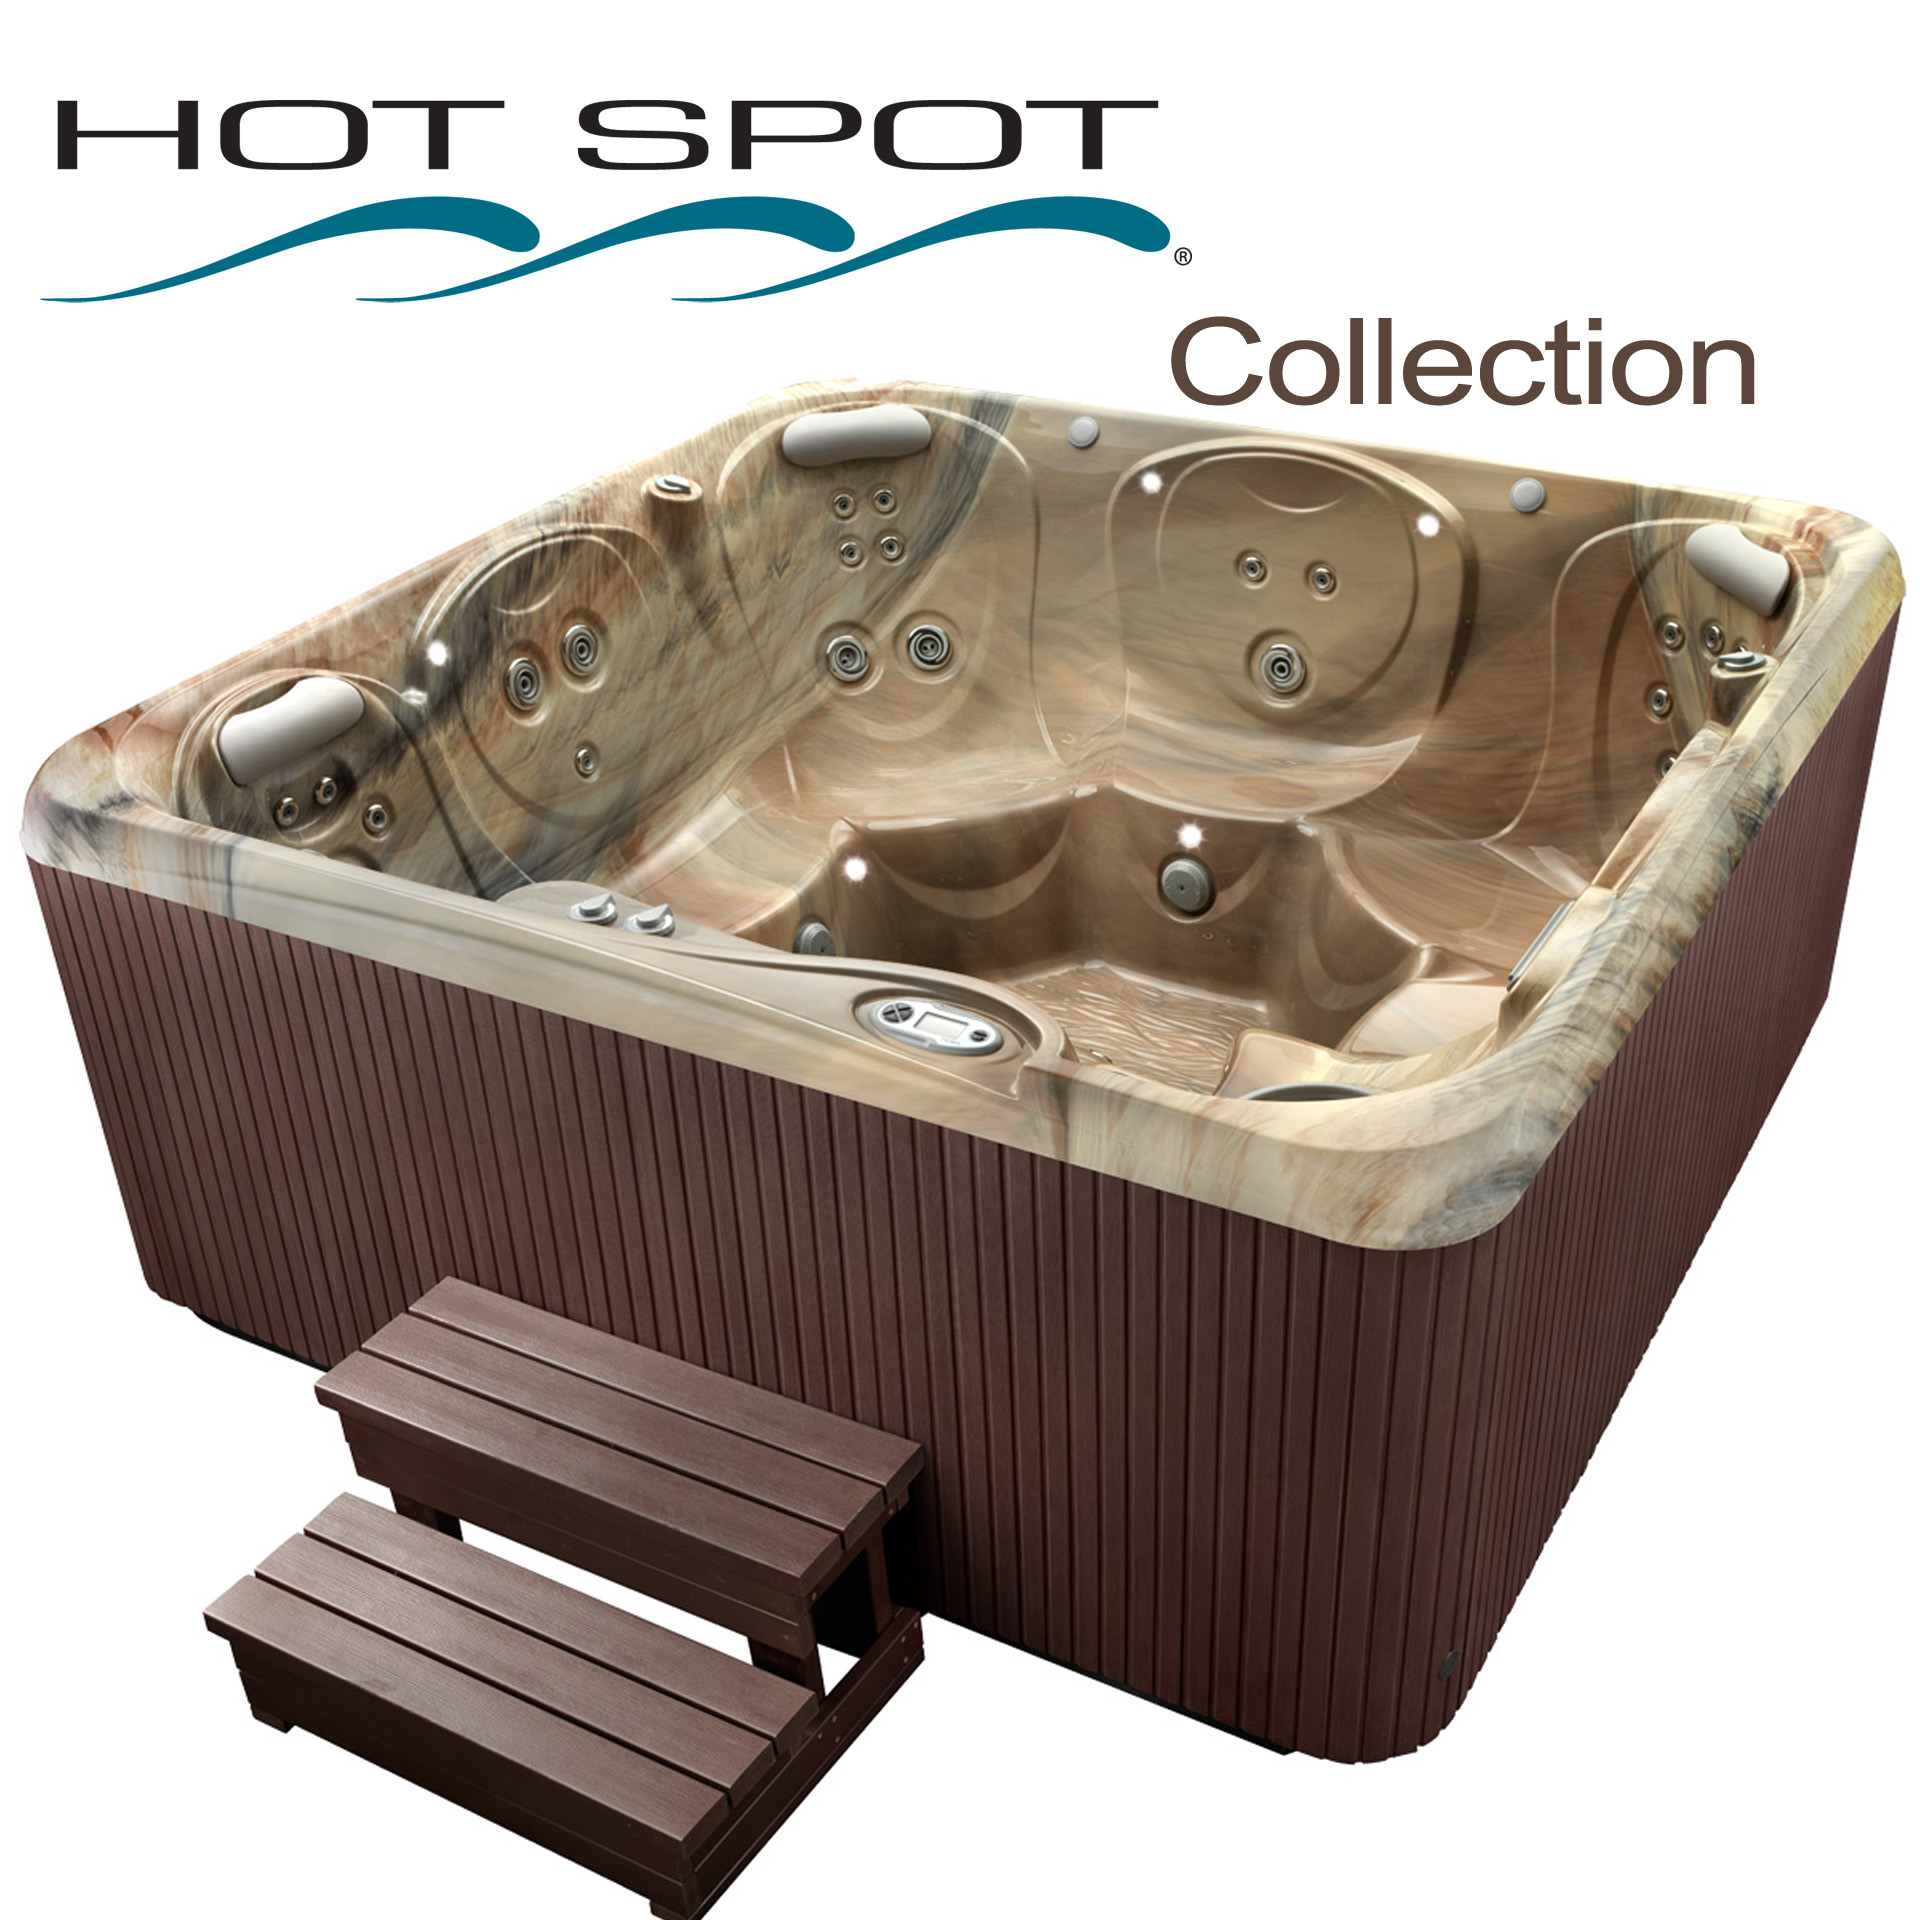 Hot Spot Collection